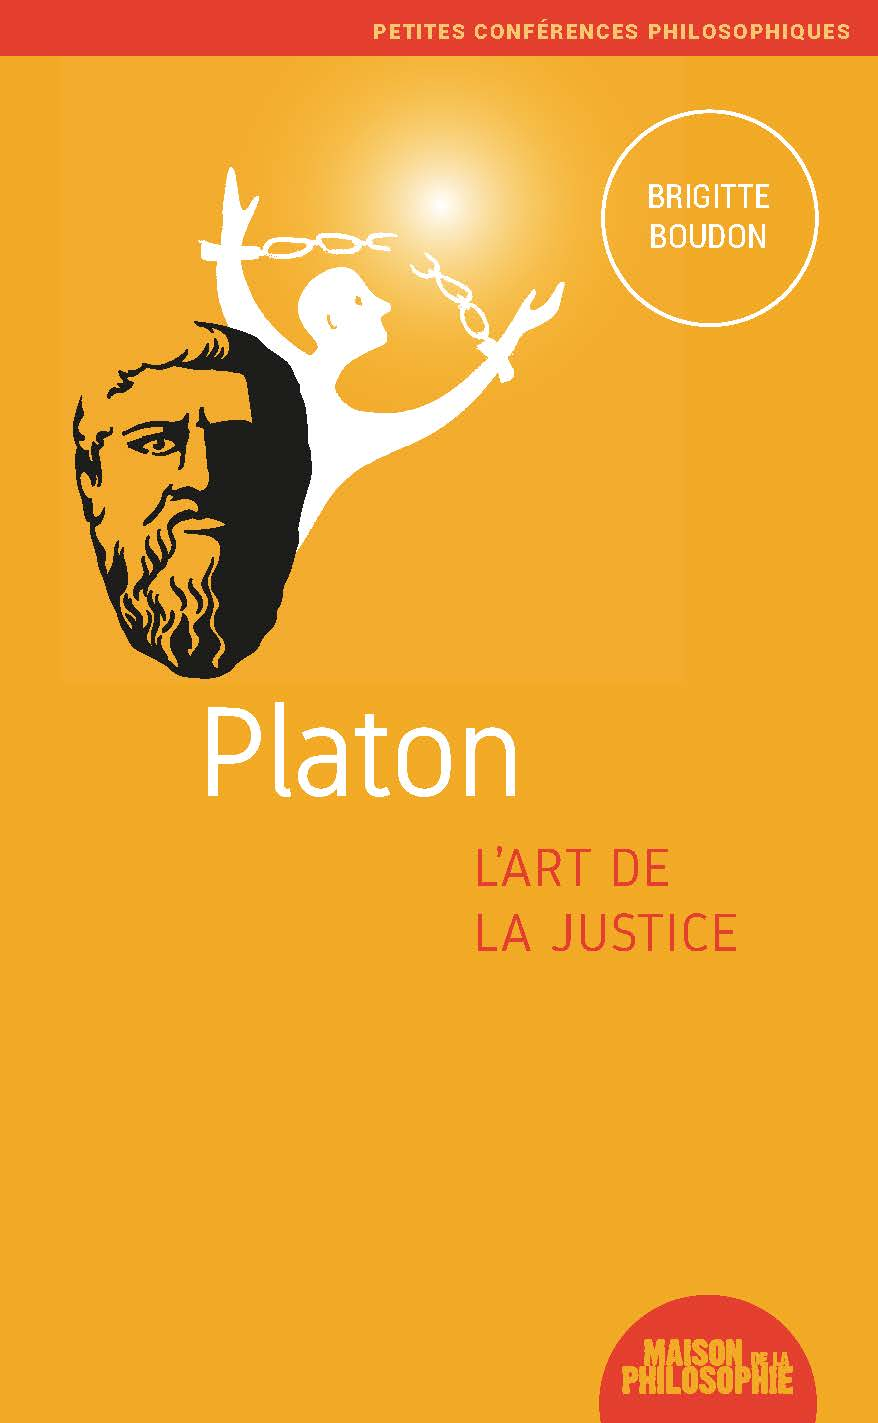 platonic justice Free essay: platonic justice throughout platos republic, the subject of platonic justice and its goodness to its self arise and are discussed amongst plato.